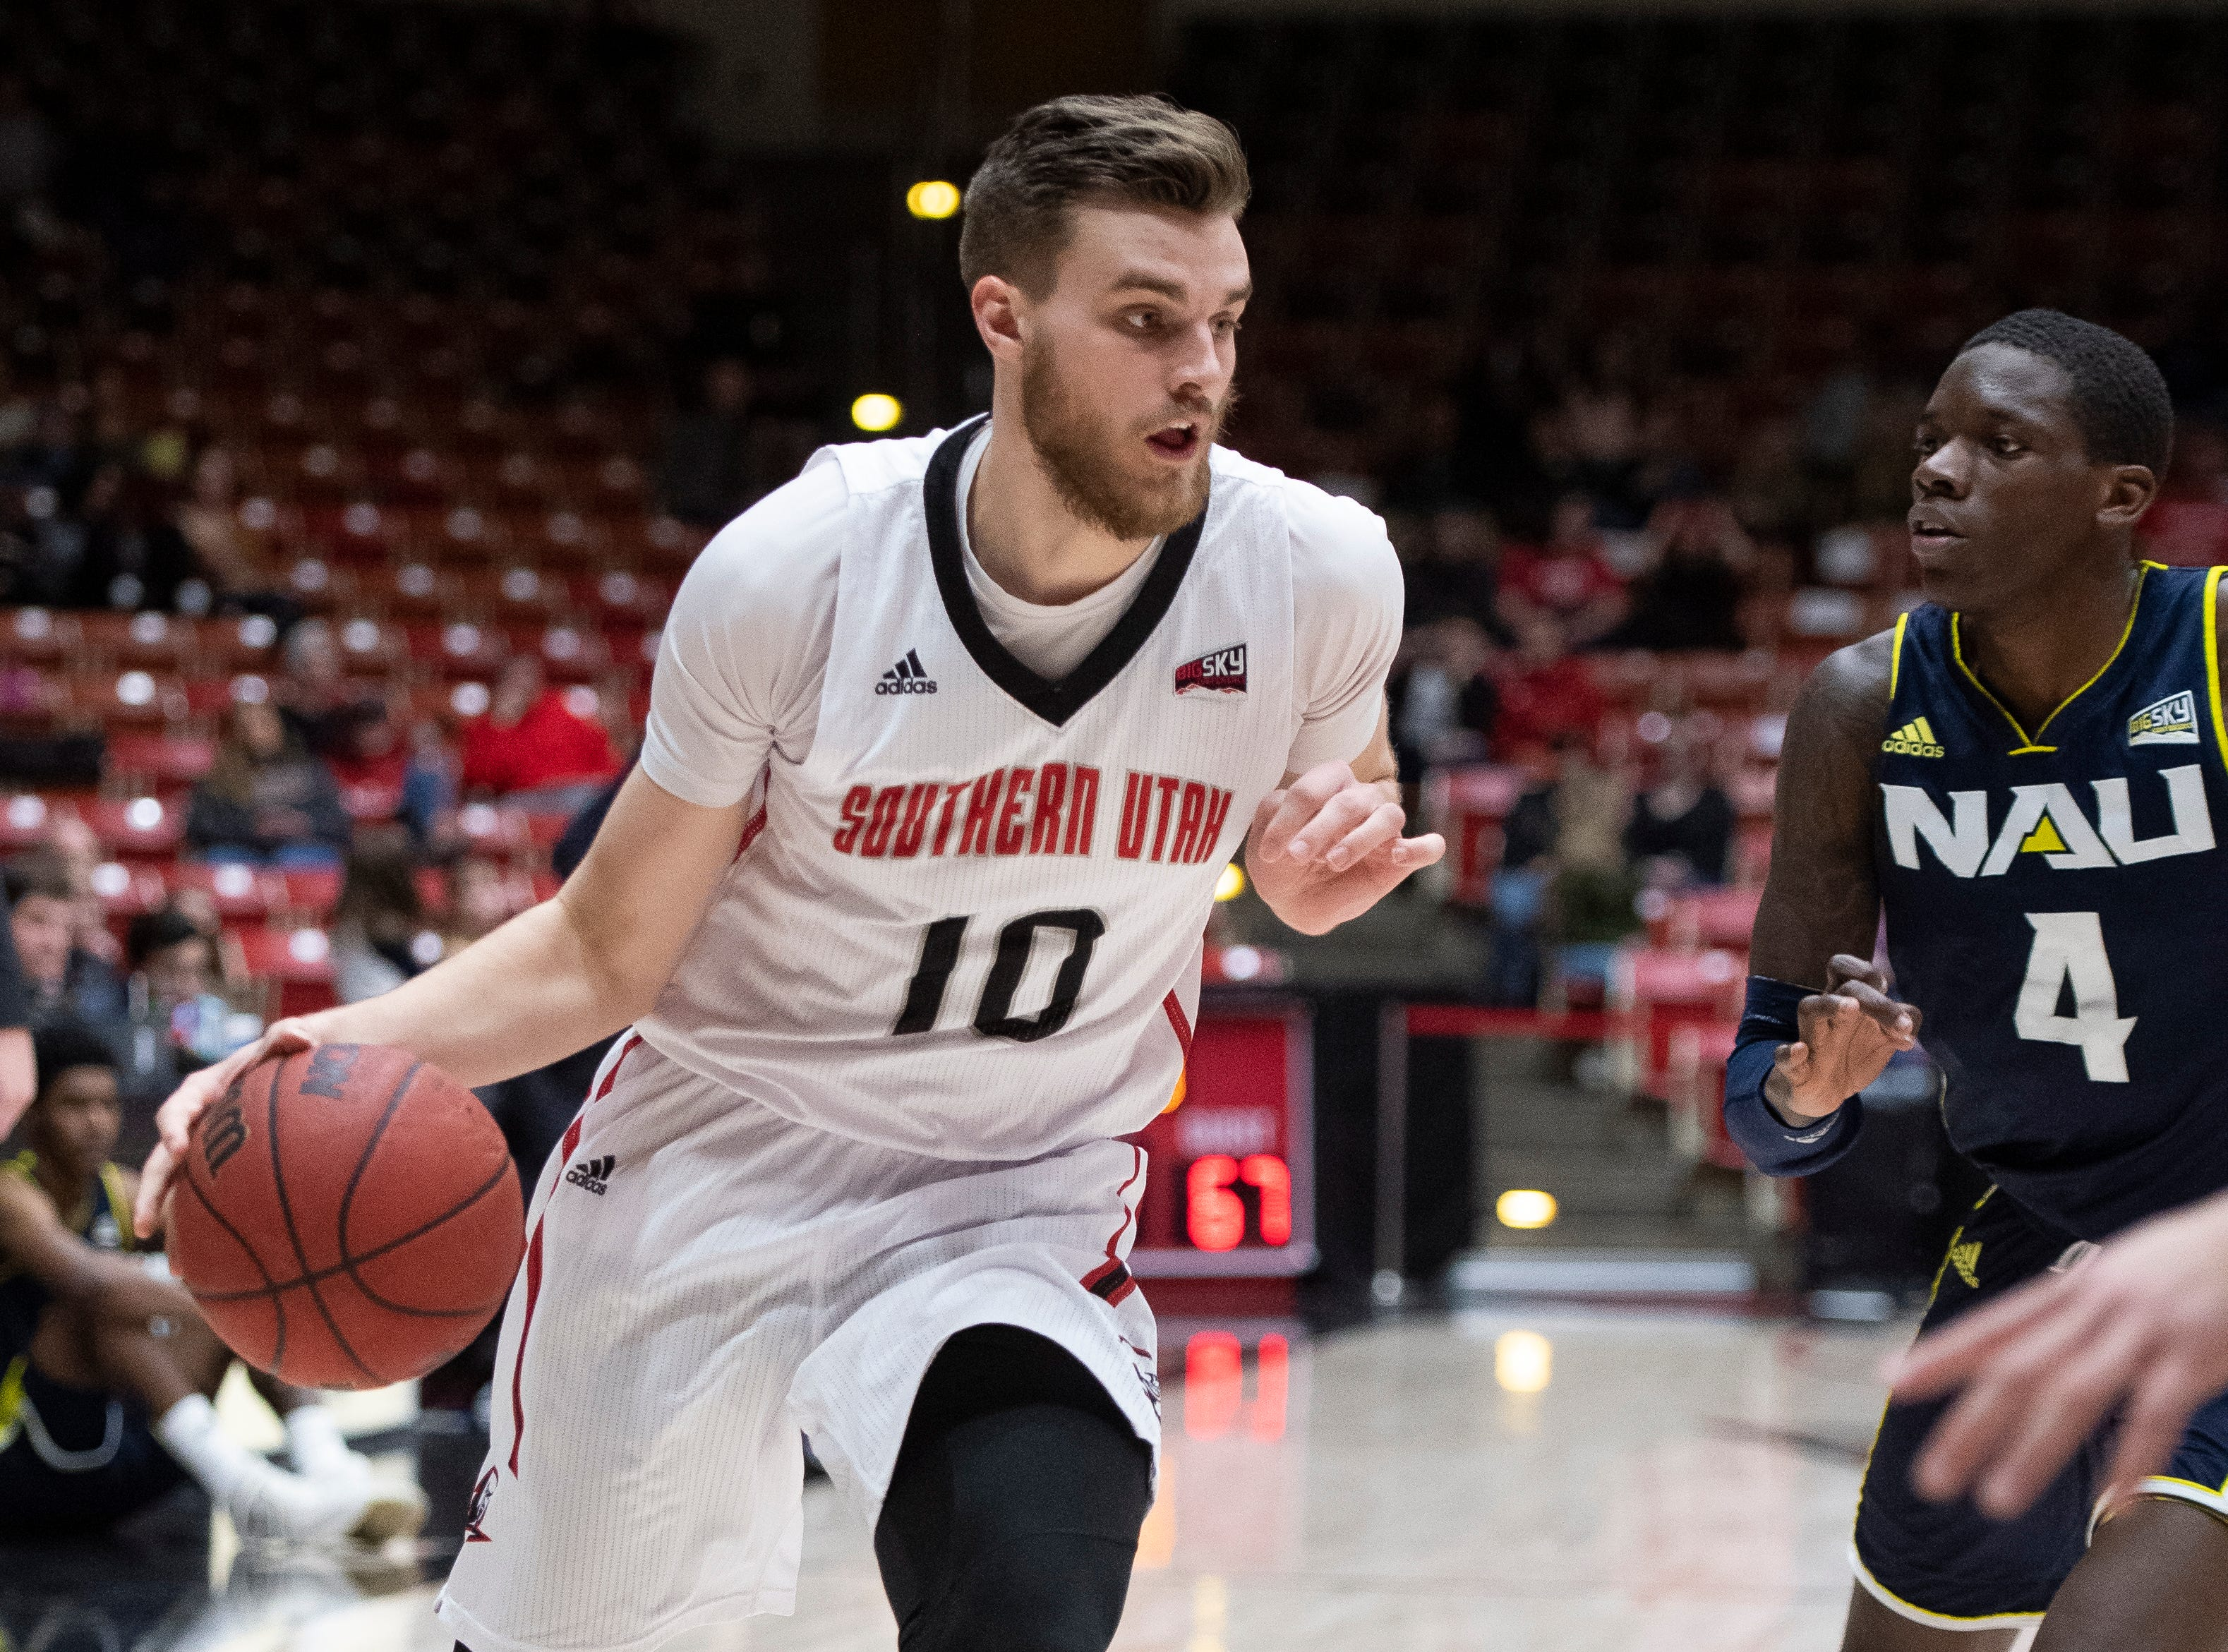 Southern Utah University junior Jacob Calloway (10) moves the ball against rival Northern Arizona at the America First Event Center Saturday, January 12, 2019. SUU won, 84-82.